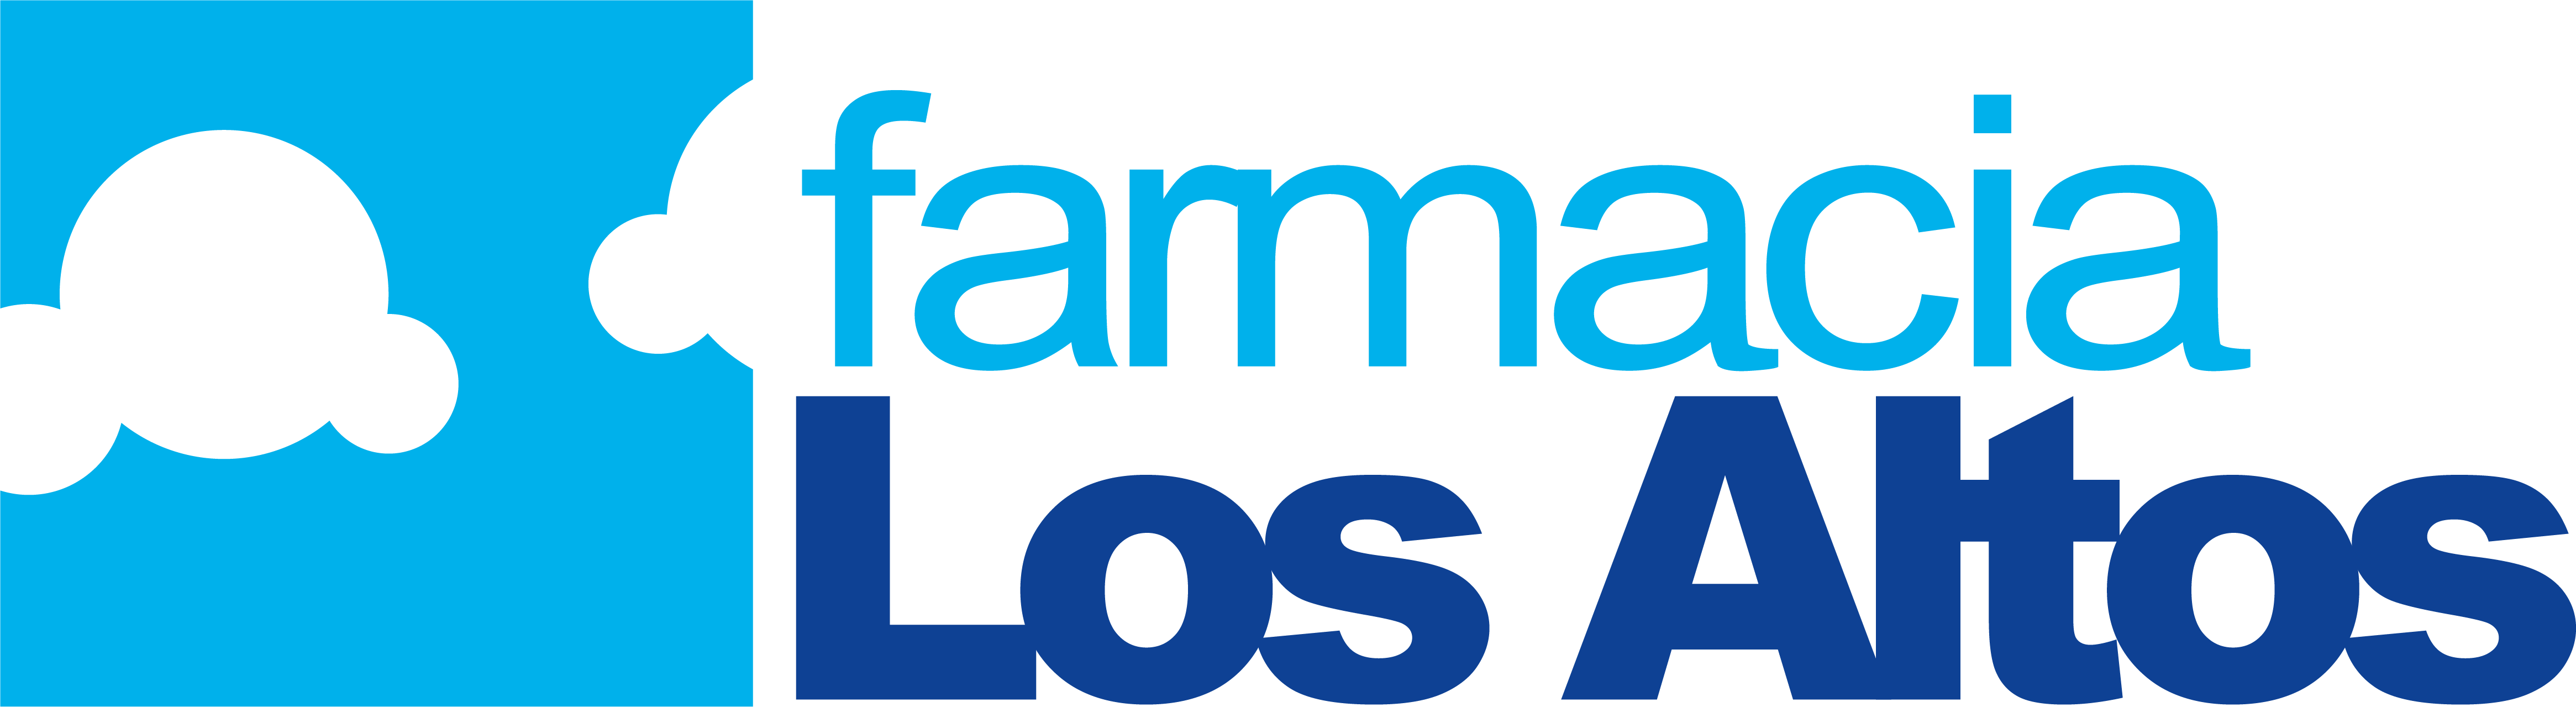 Farmacia Los Altos